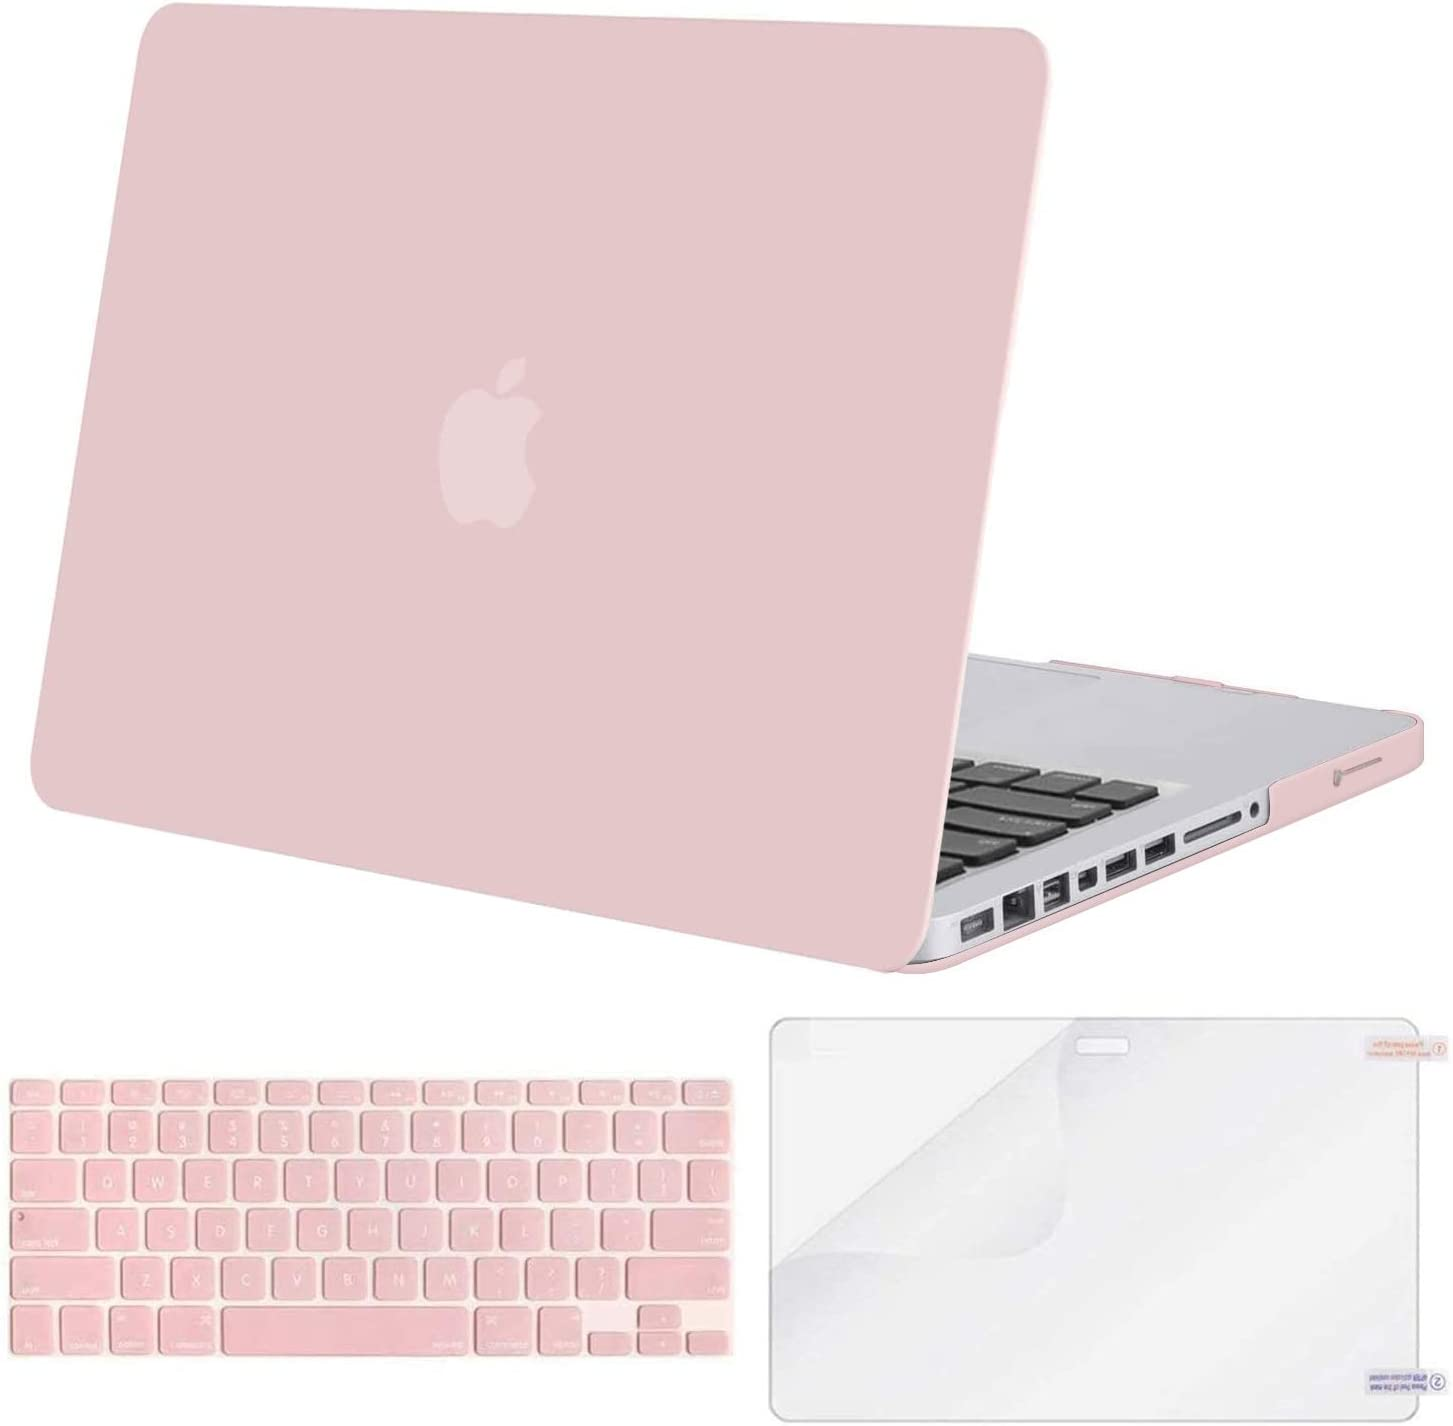 MOSISO Plastic Hard Shell Case & Keyboard Cover & Screen Protector Only Compatible with Old Version MacBook Pro 13 inch (A1278, with CD-ROM), Release Early 2012/2011/2010/2009/2008, Rose Quartz